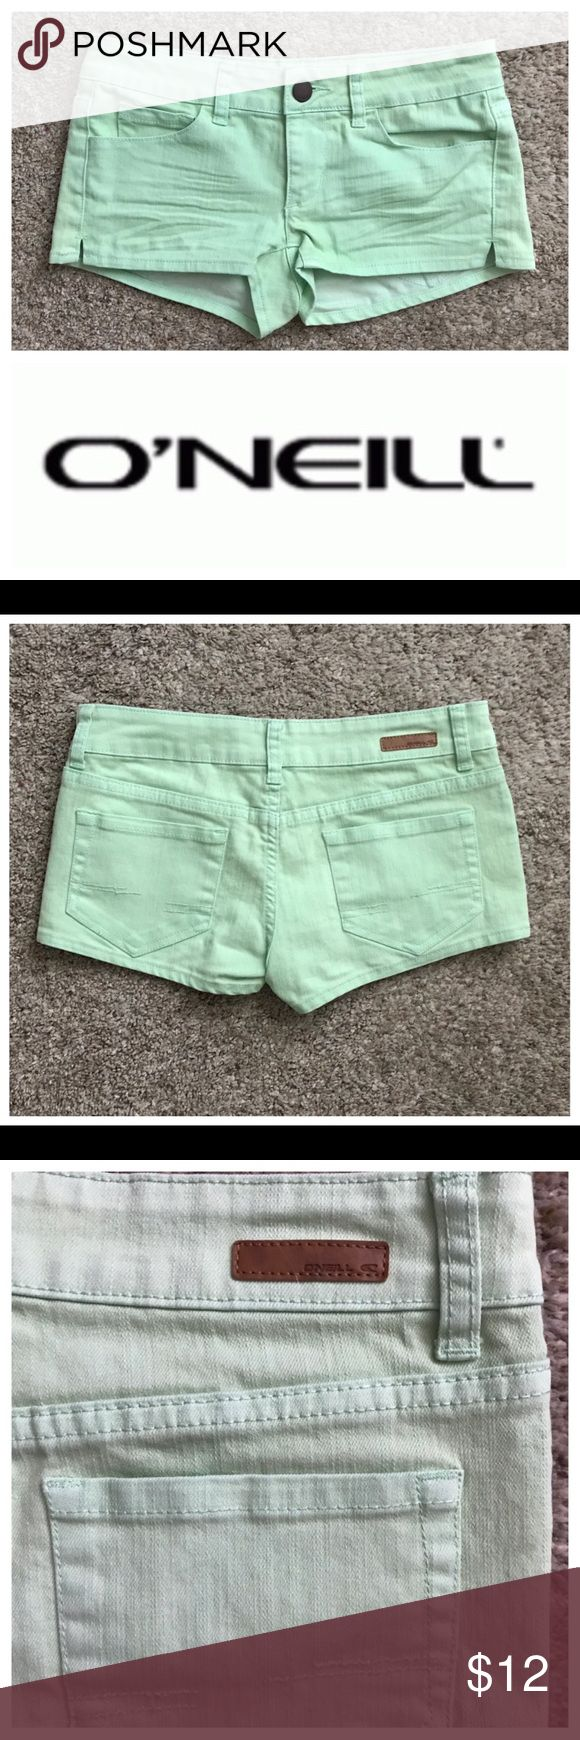 """O'Neill Size 3 Mint Green Shorts Excellent condition; Across waist - 15"""", Front Rise- 7"""", Inseam - 2""""; Cotton, Polyester, Spandex O'Neill Shorts"""